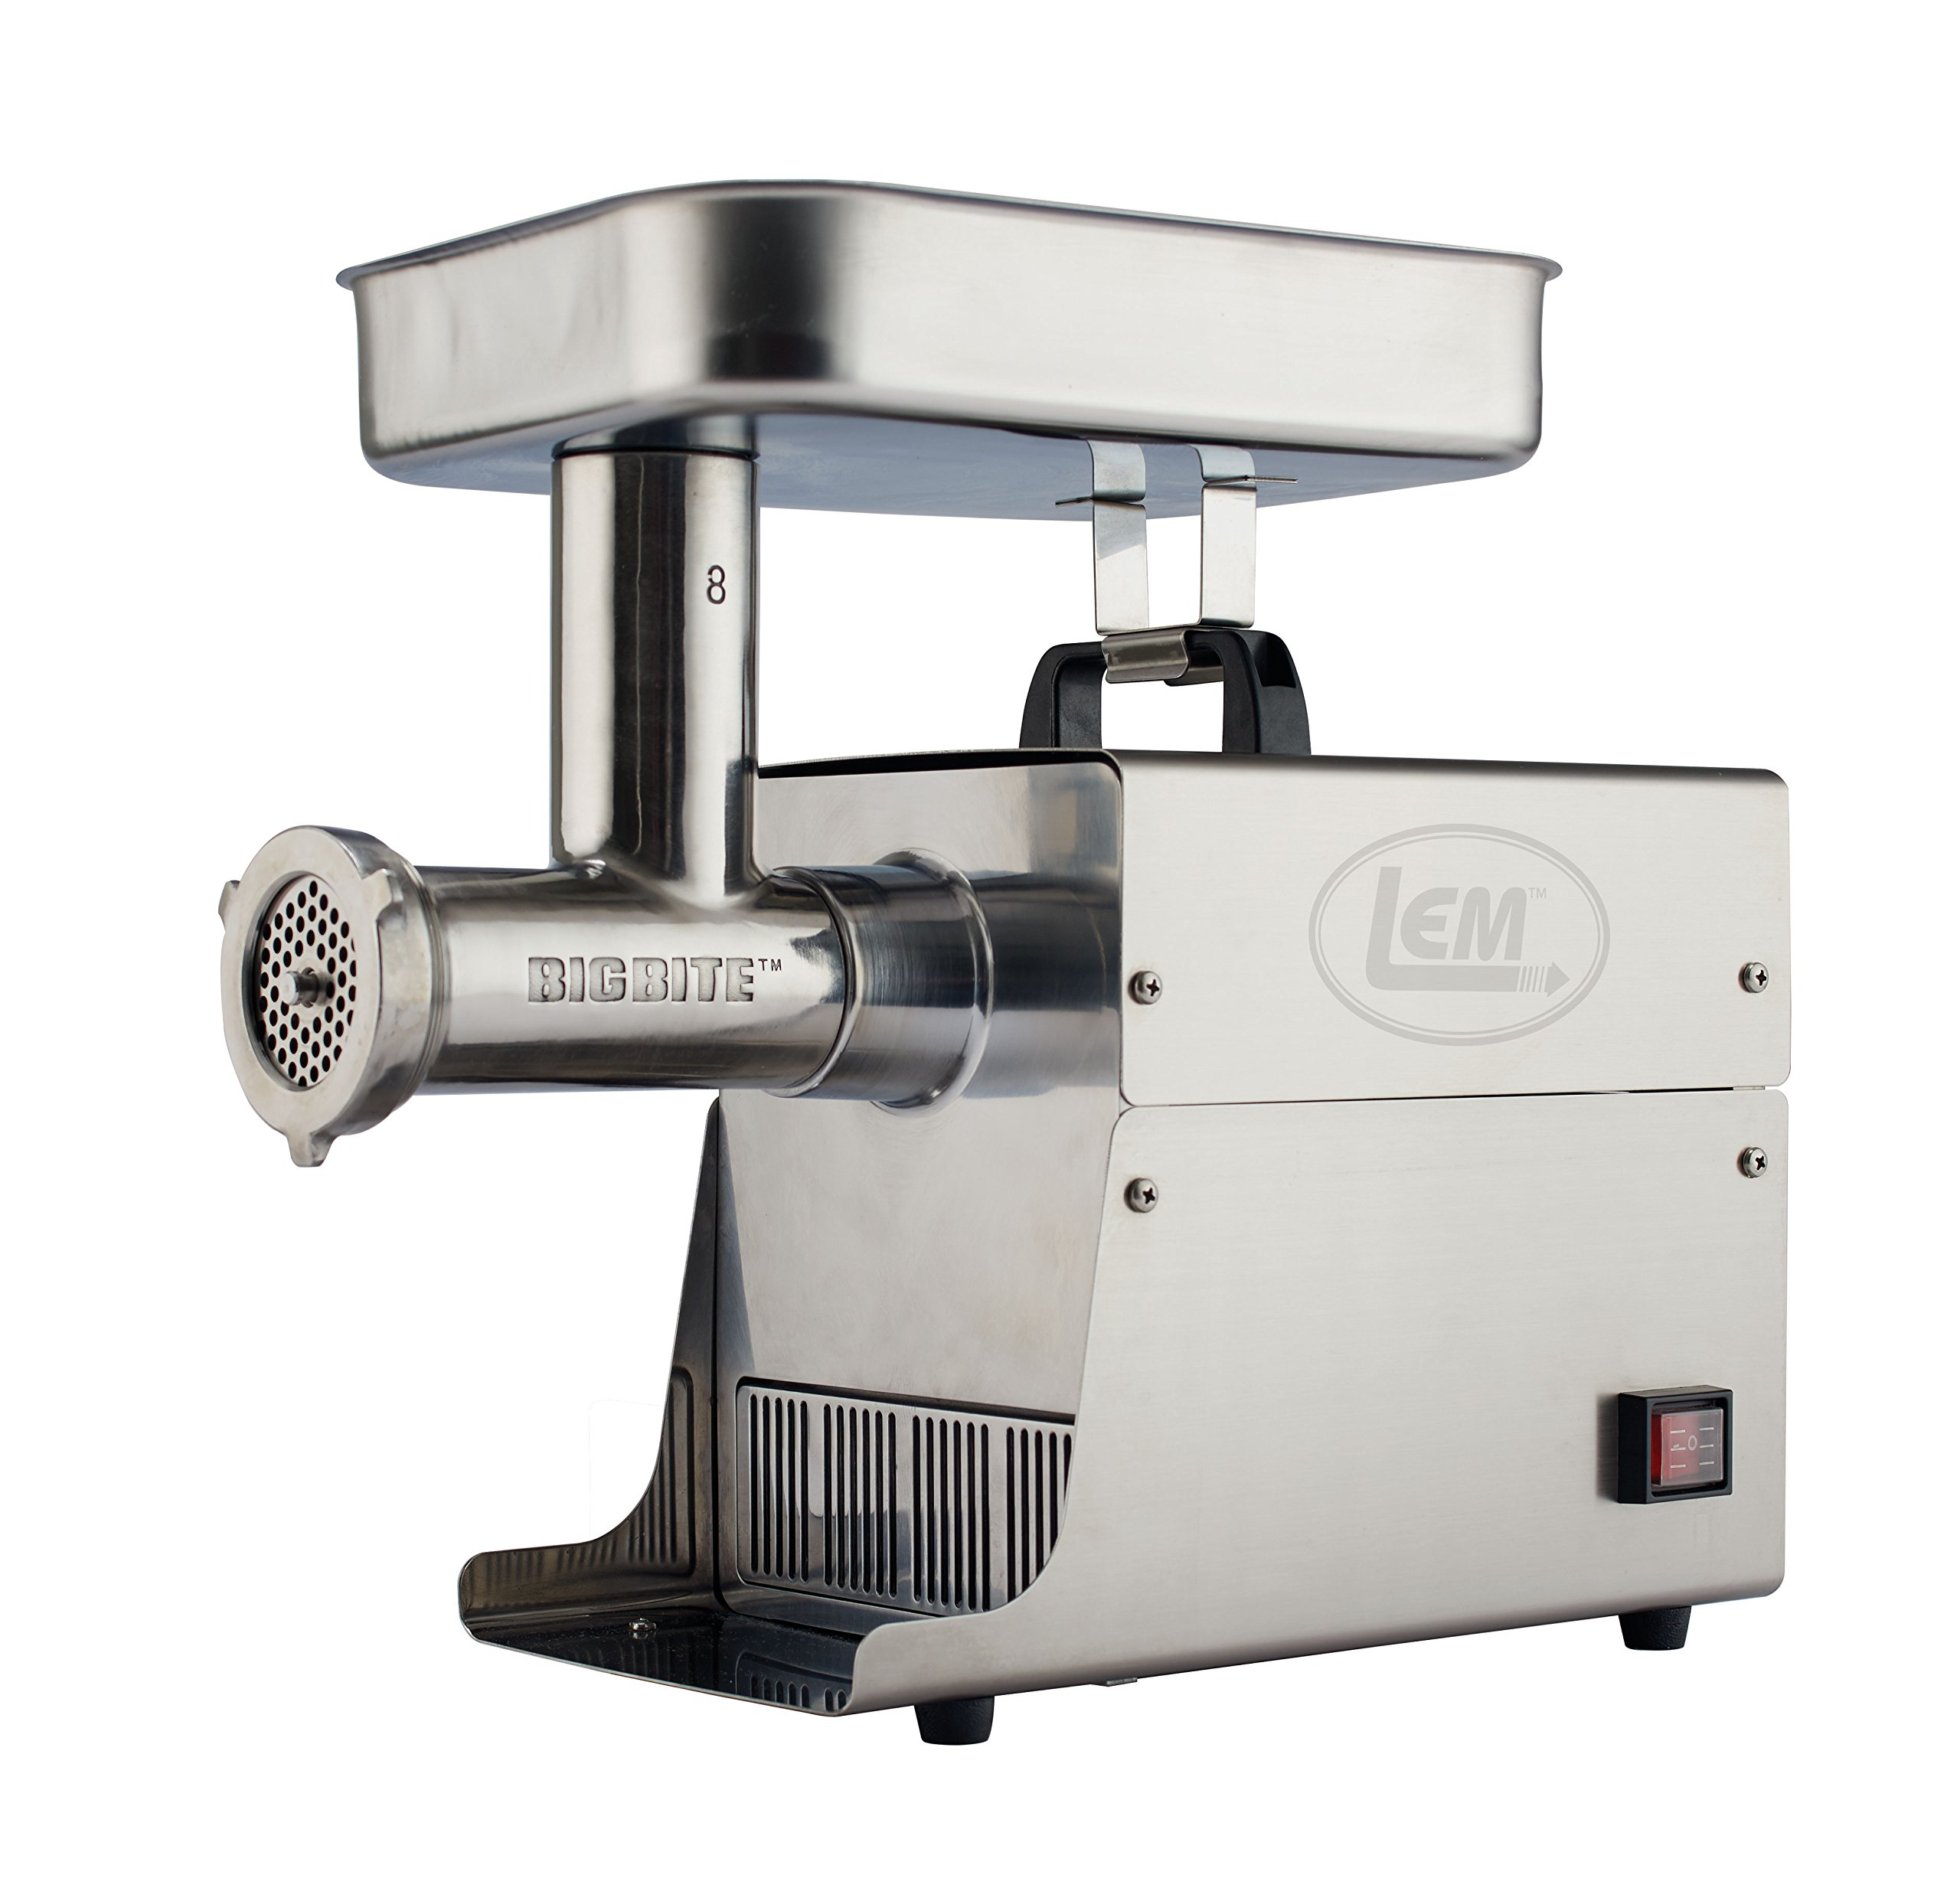 LEM Products 17791 Big Bite #8 .5HP Stainless Steel Electric Meat Grinder by LEM